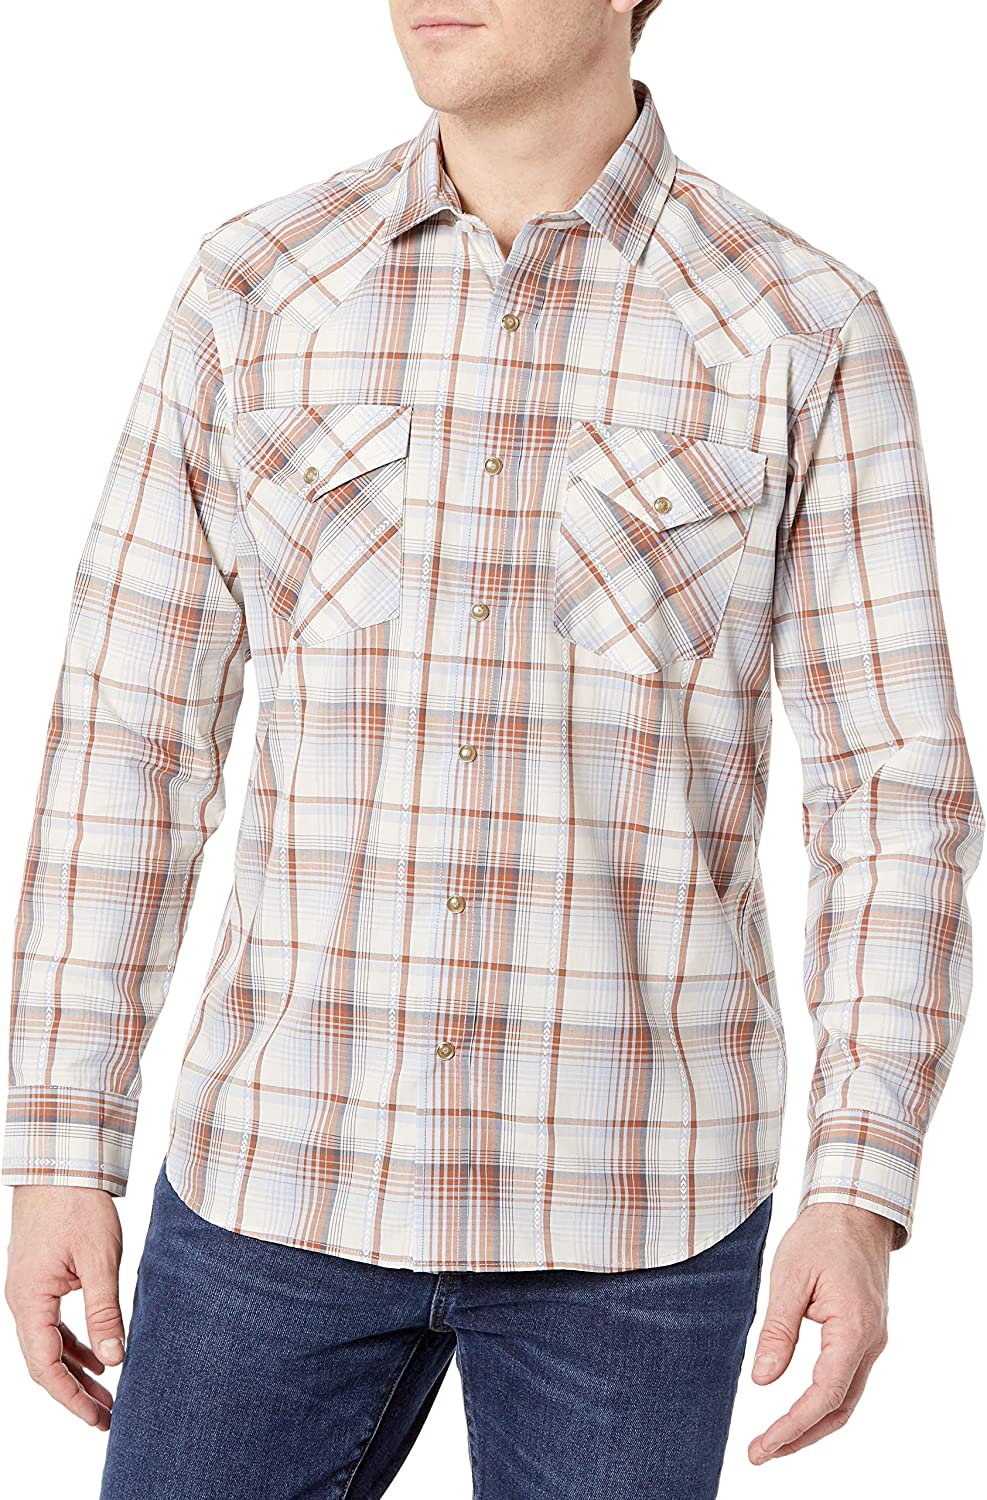 Pendleton Men's Long Sleeve Snap Classic-Fit Shir Frontier Max 86% OFF 5 ☆ very popular Front